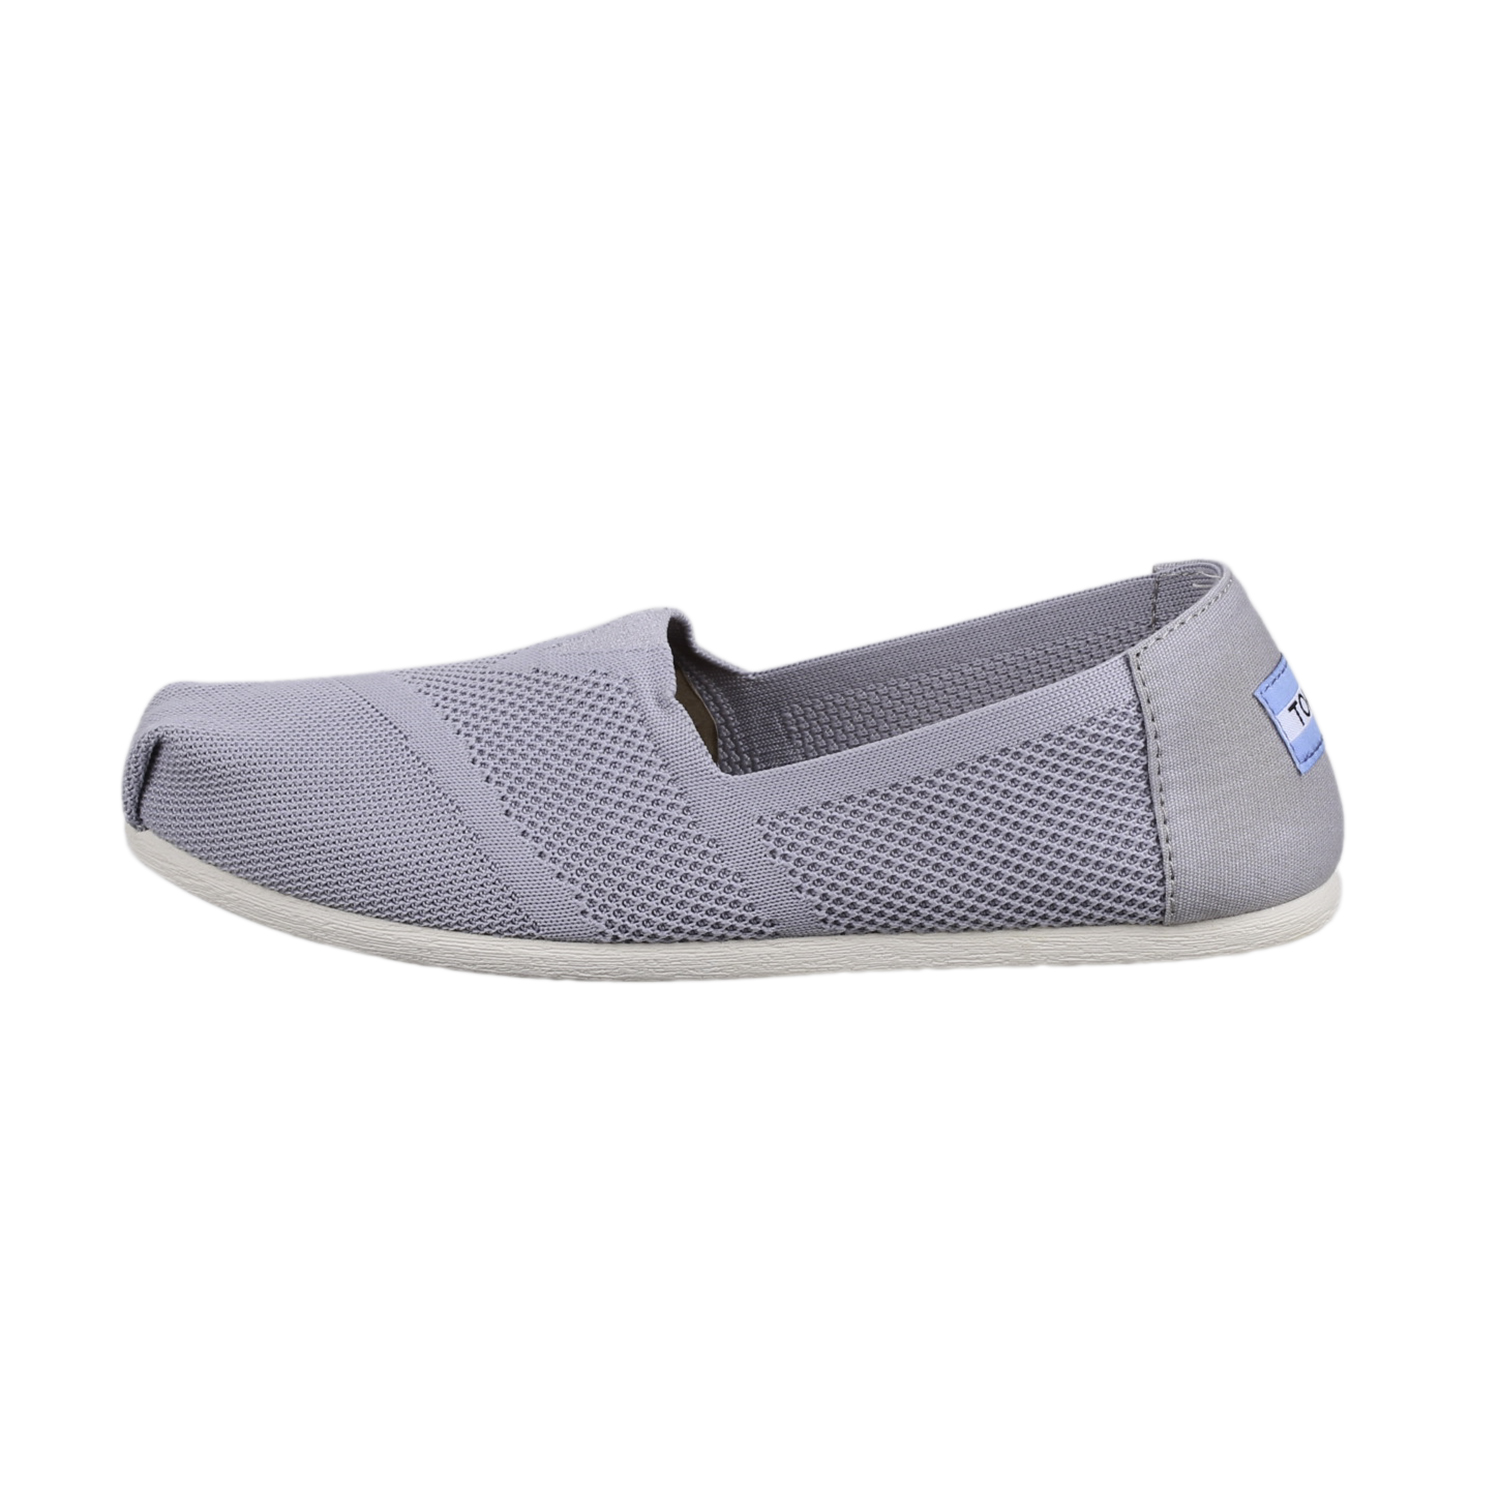 72f04797d54 Details about Toms Women s 10010824 Classic Flat Slip-On Shoes Drizzle Grey  Custom Knit